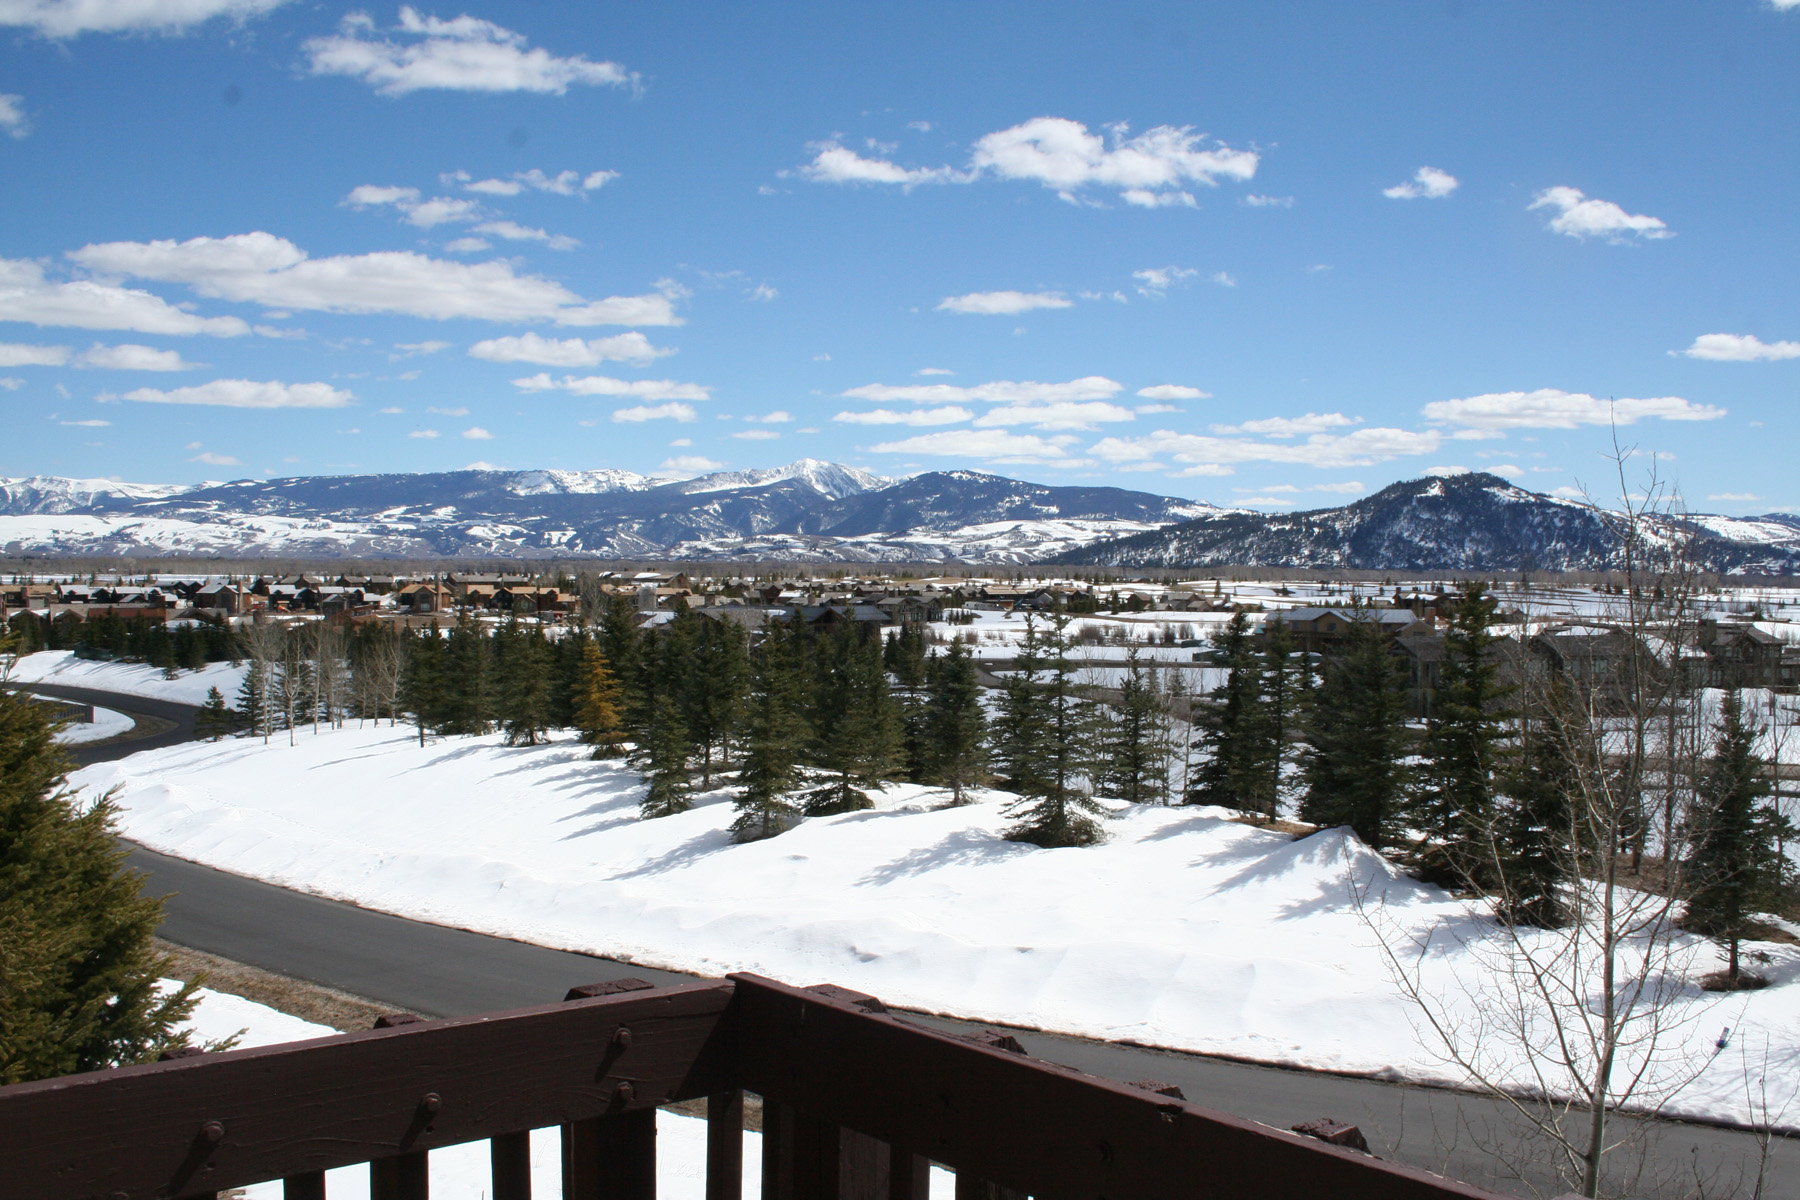 Copropriété pour l Vente à Top Floor Corner Unit with Expansive Views 3680 W Michael Drive, #W-14-B Teton Village, Wyoming, 83014 Jackson Hole, États-Unis